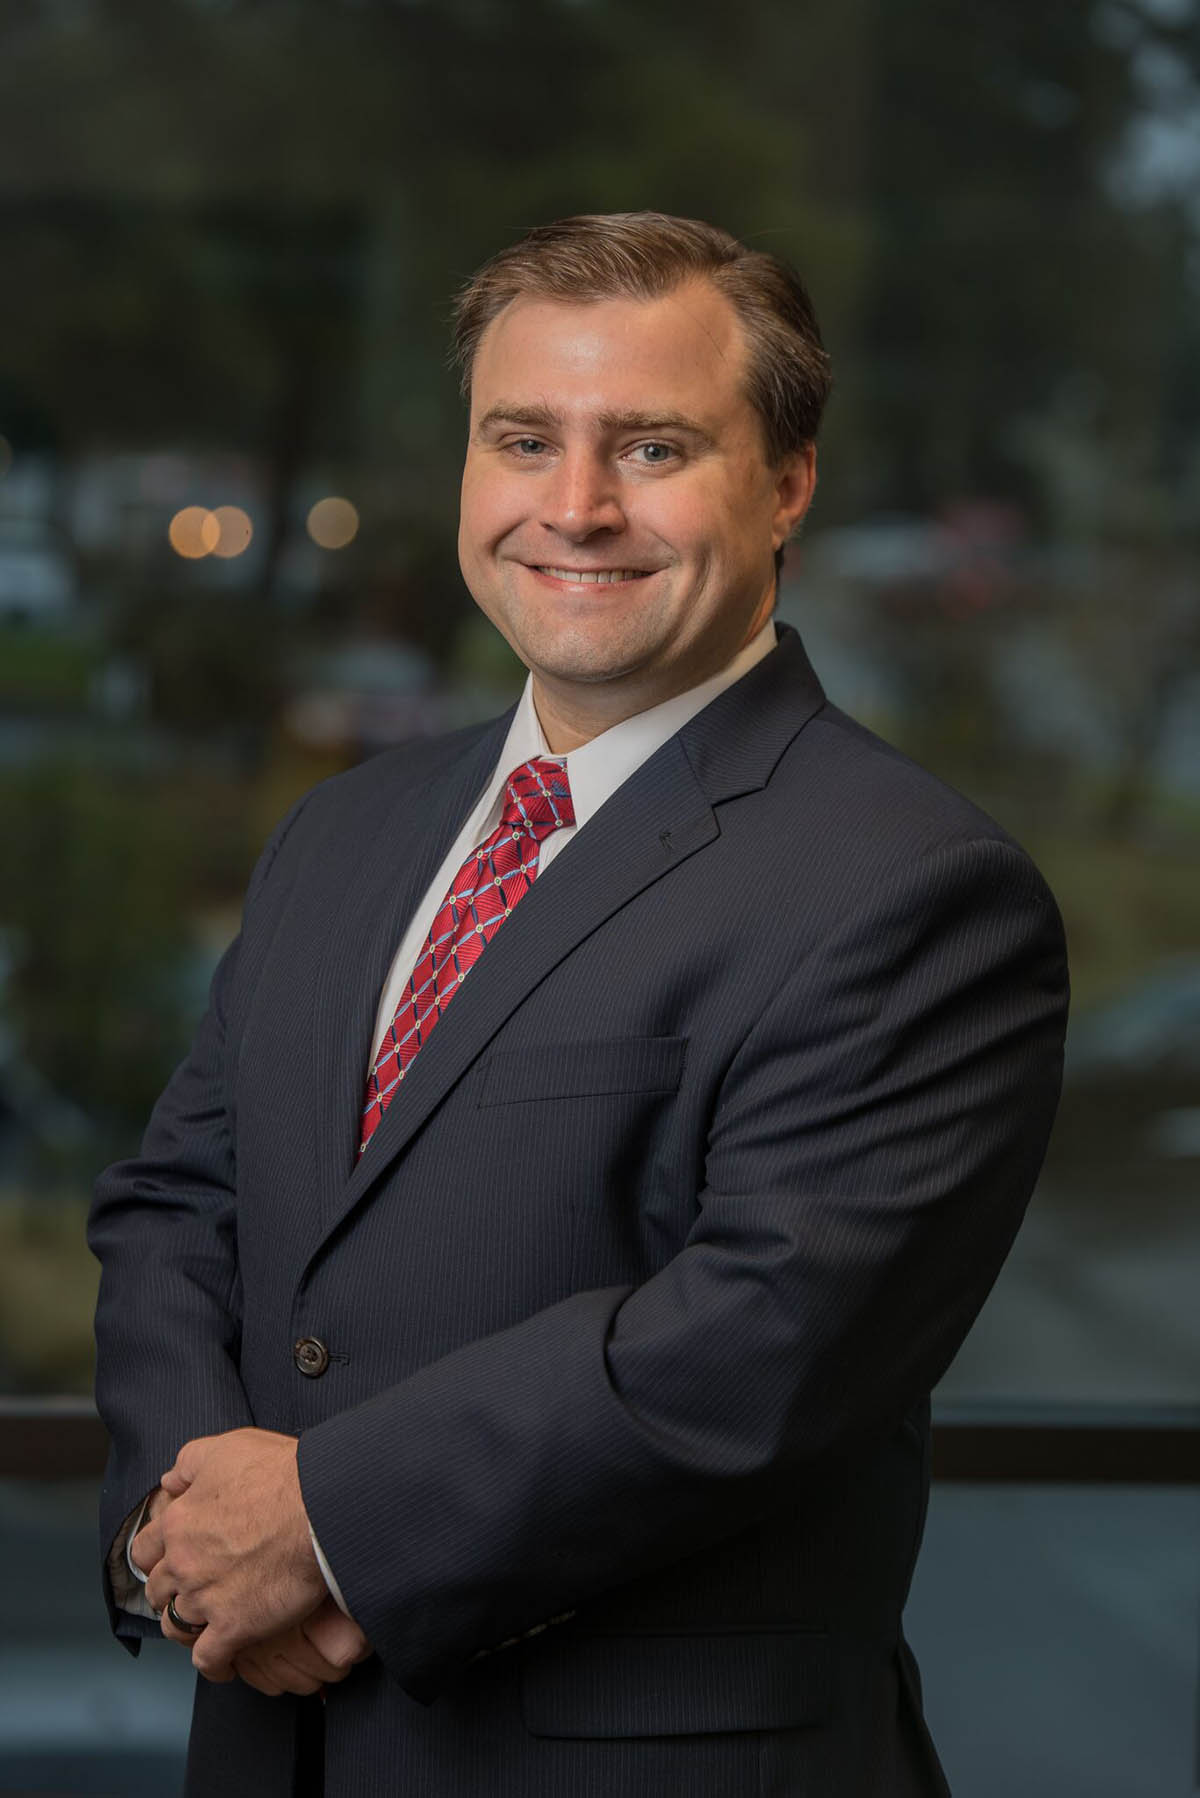 photo of Doctor Ryan Mckenna, the Doctor at Amarillo Spine Institute, looking friendly